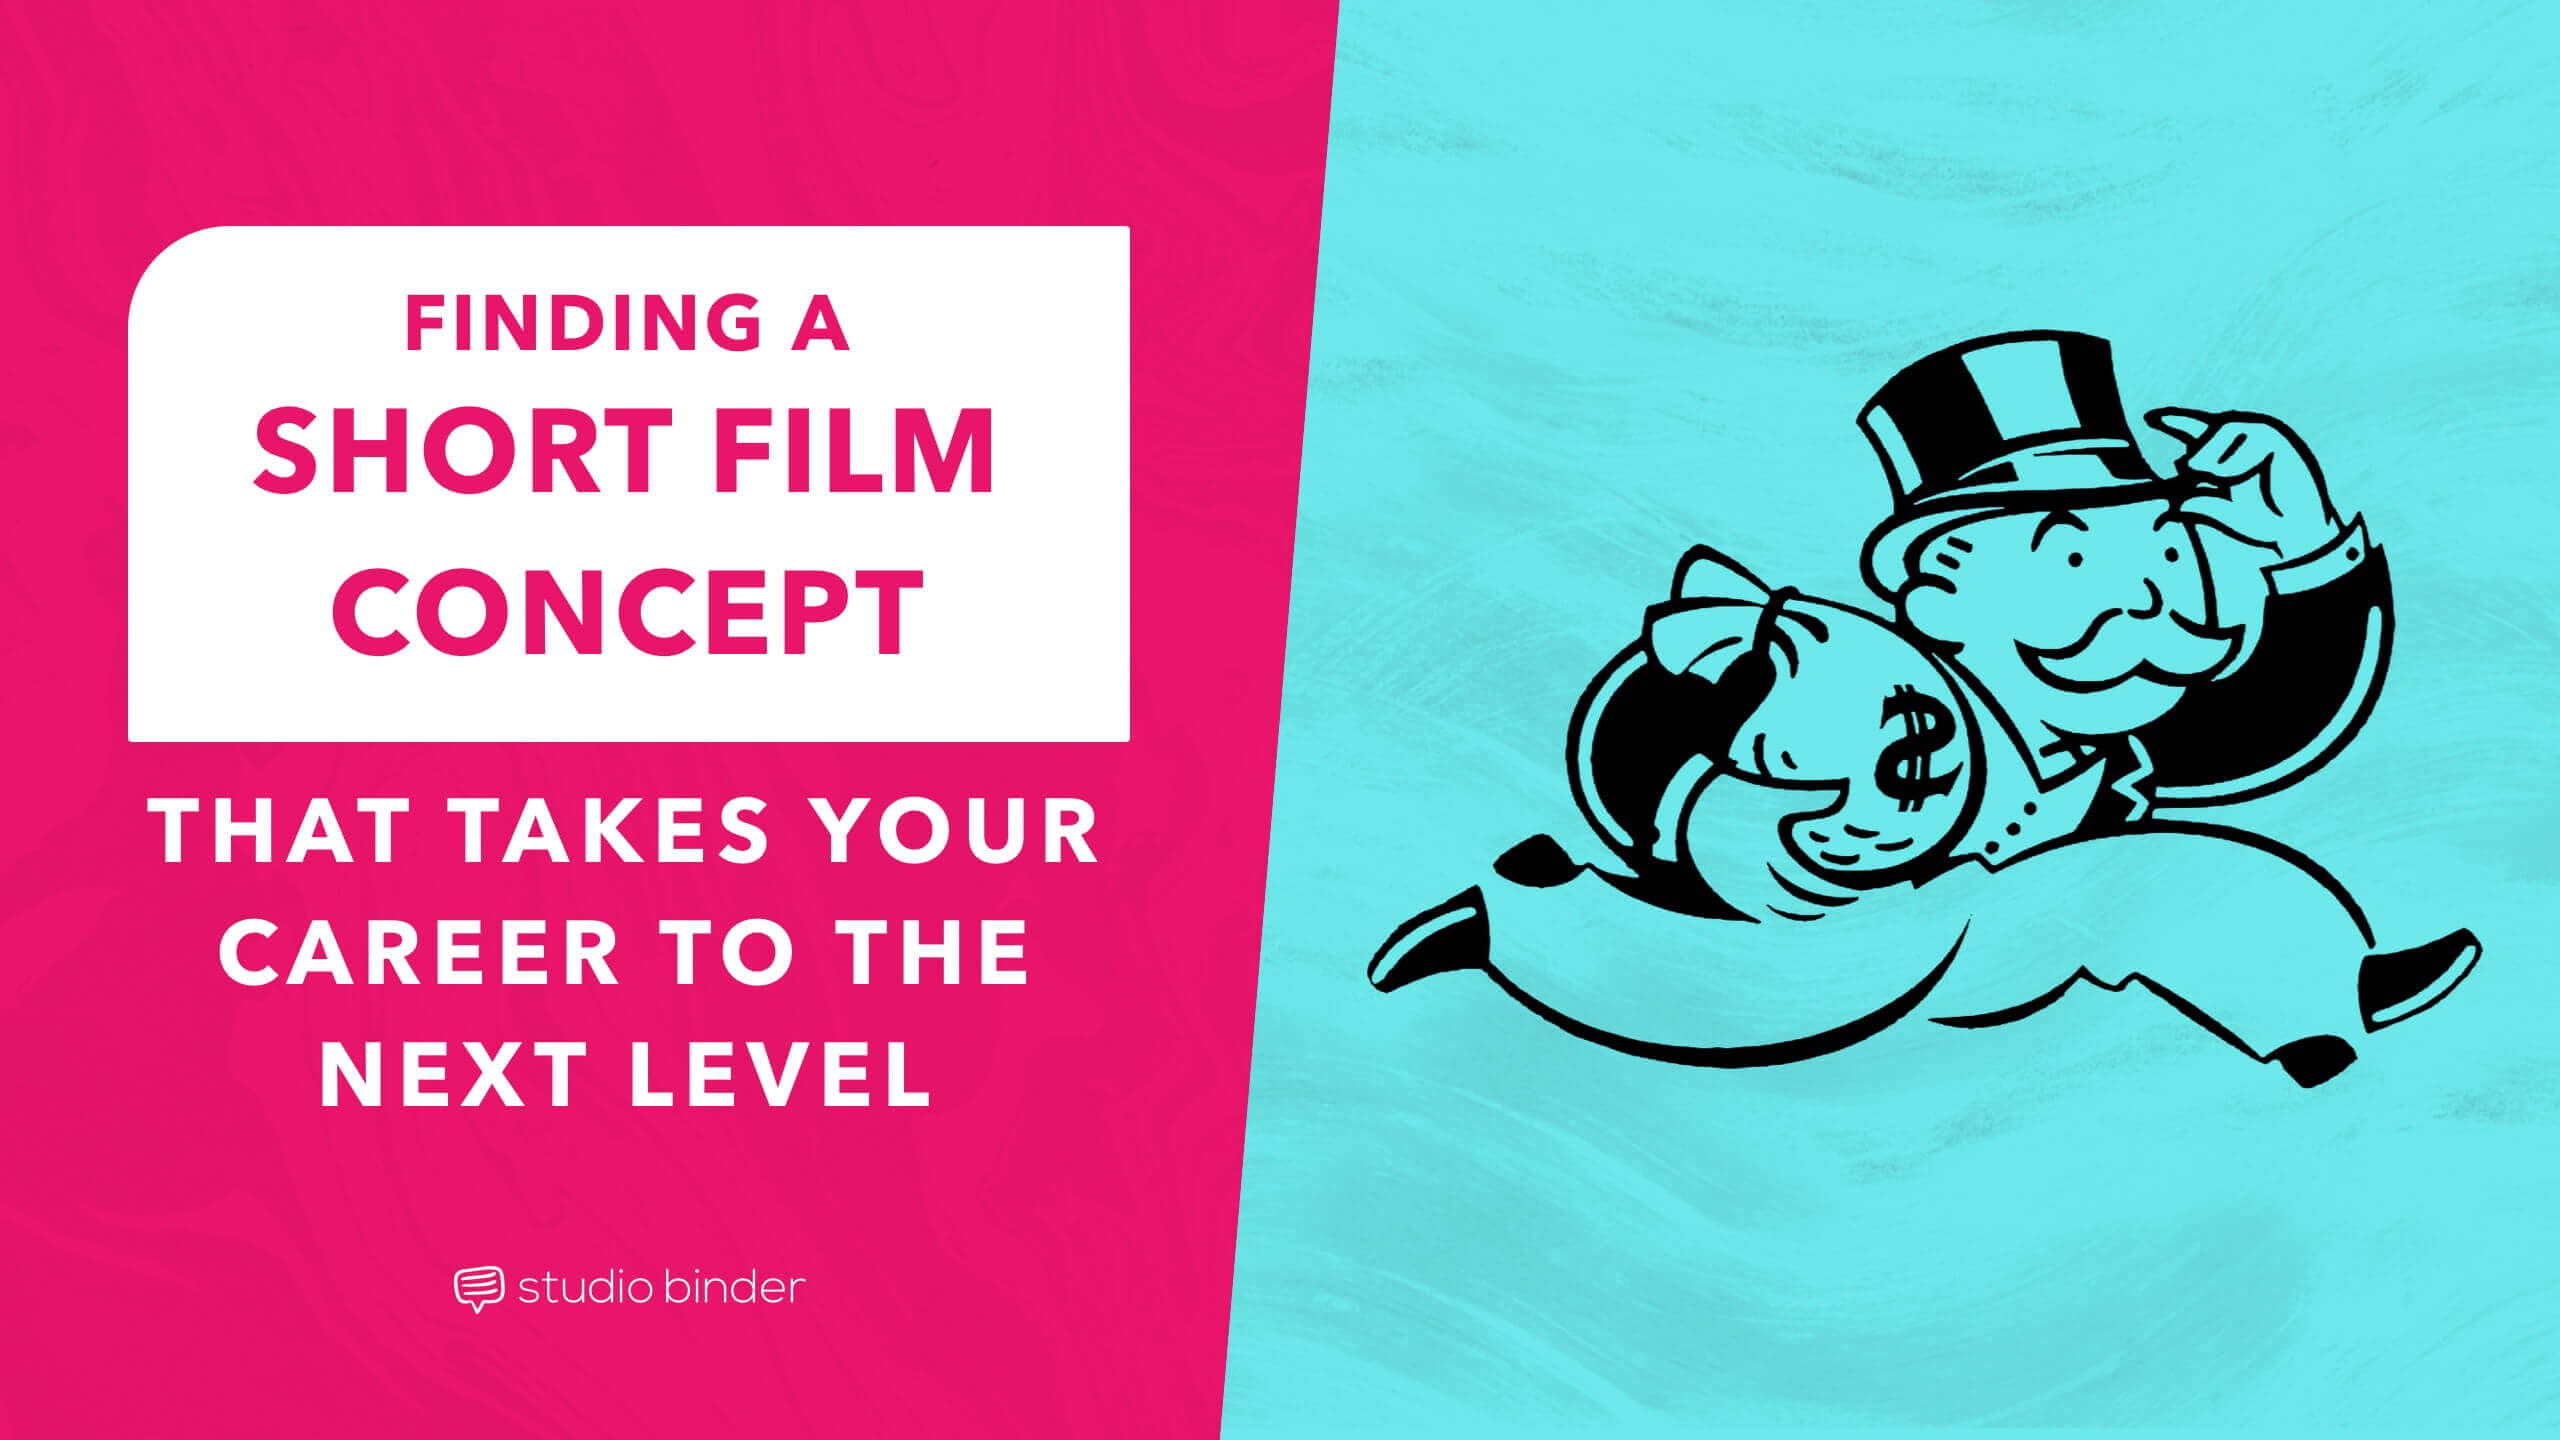 Before you can even make a short film, you need an idea. But there's so much more to finding short film ideas than just what excites you.